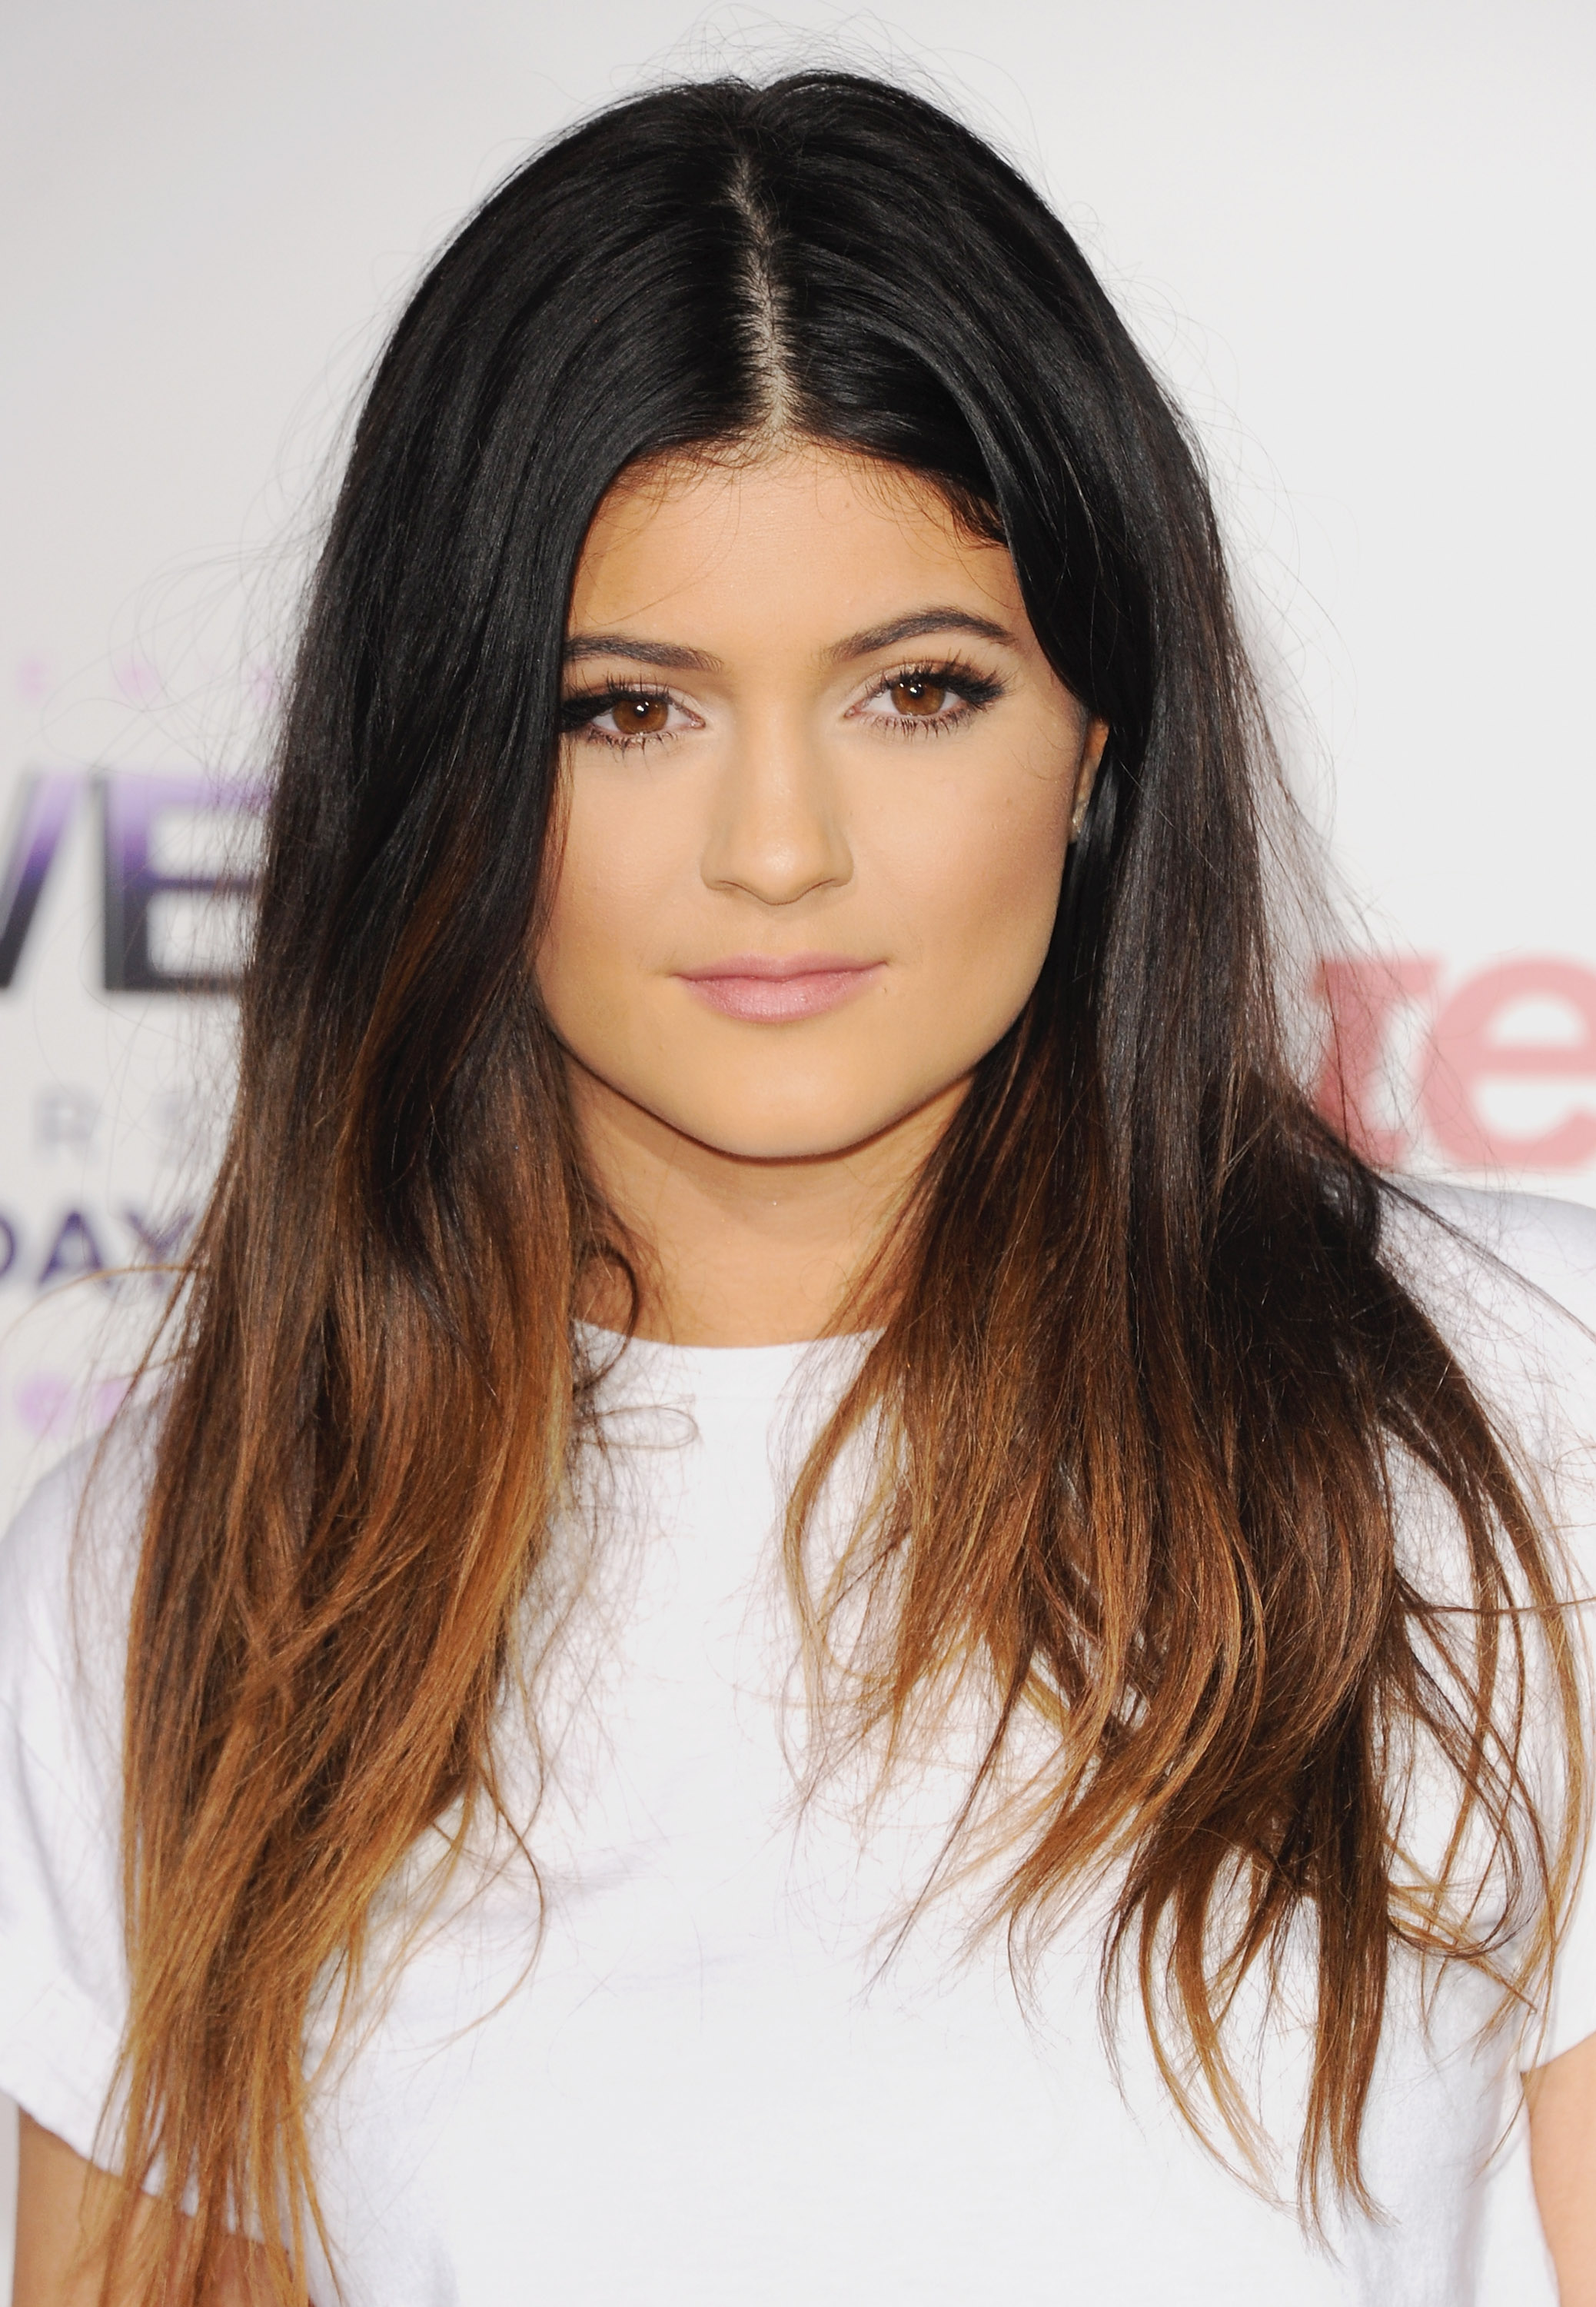 Kylie Jenner New Short Haircut   hairstylegalleries.com